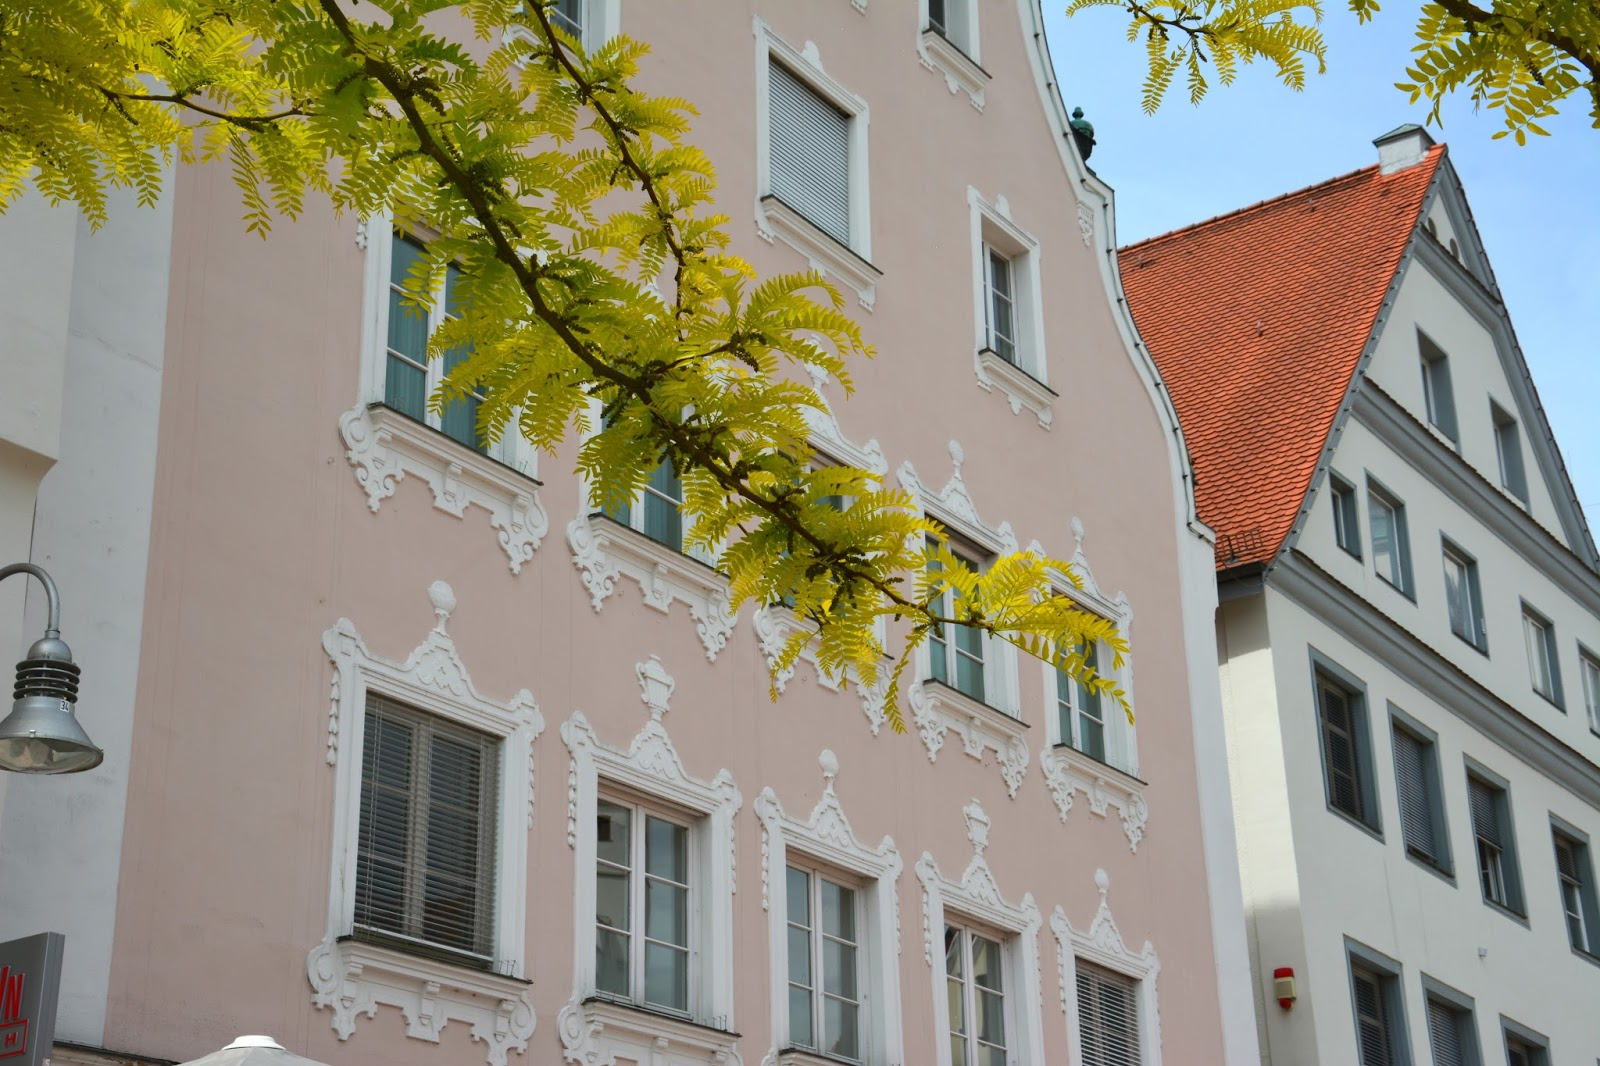 Branch with green leaves in front of pink house facade